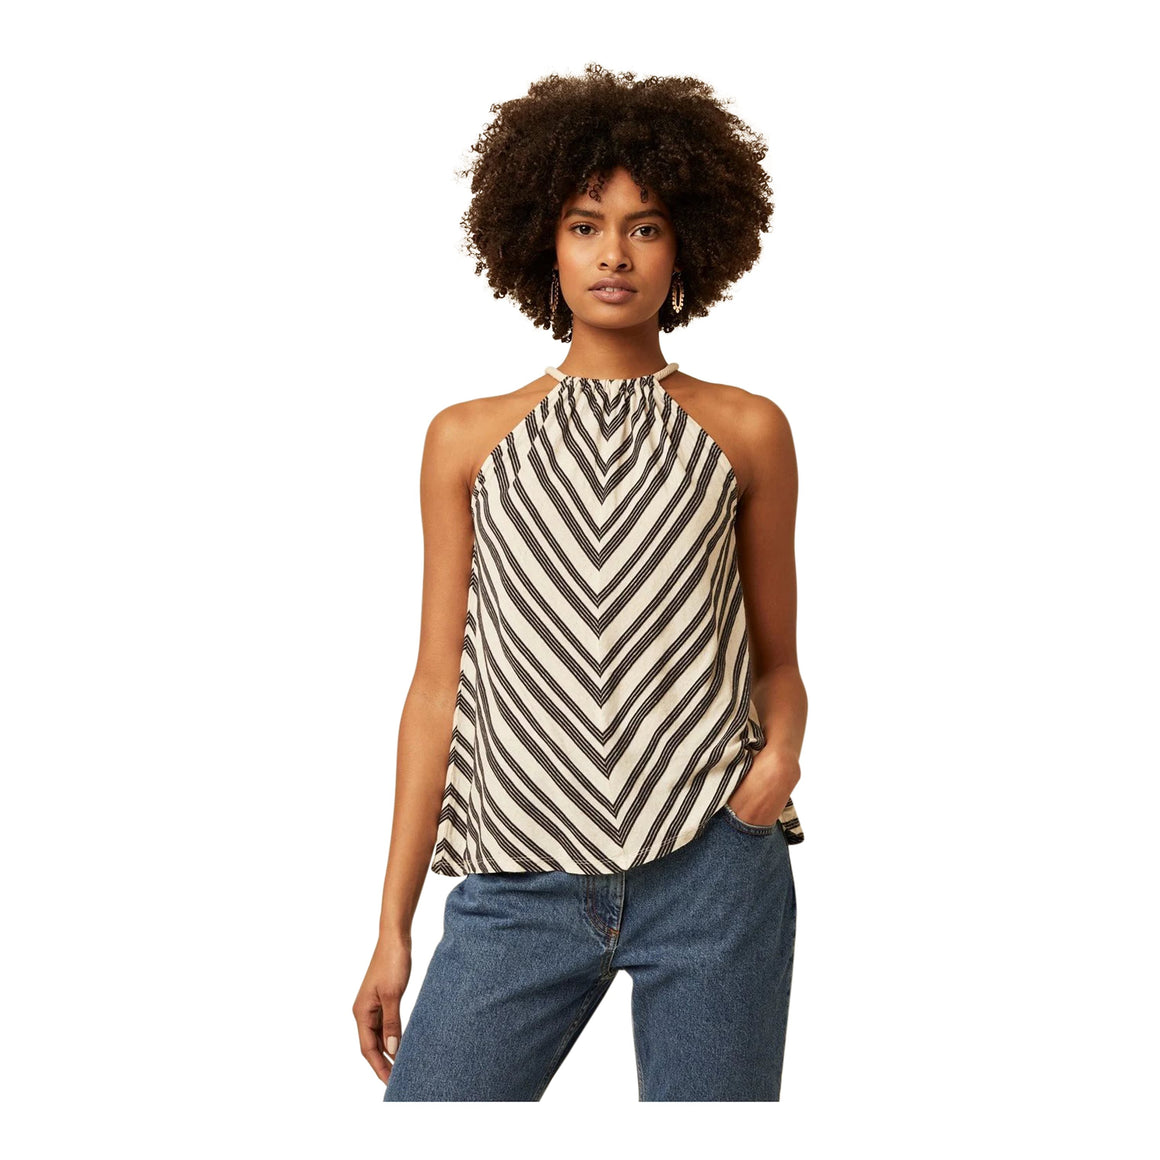 Lumi Stripe Vest Top for Women in Natural & Black